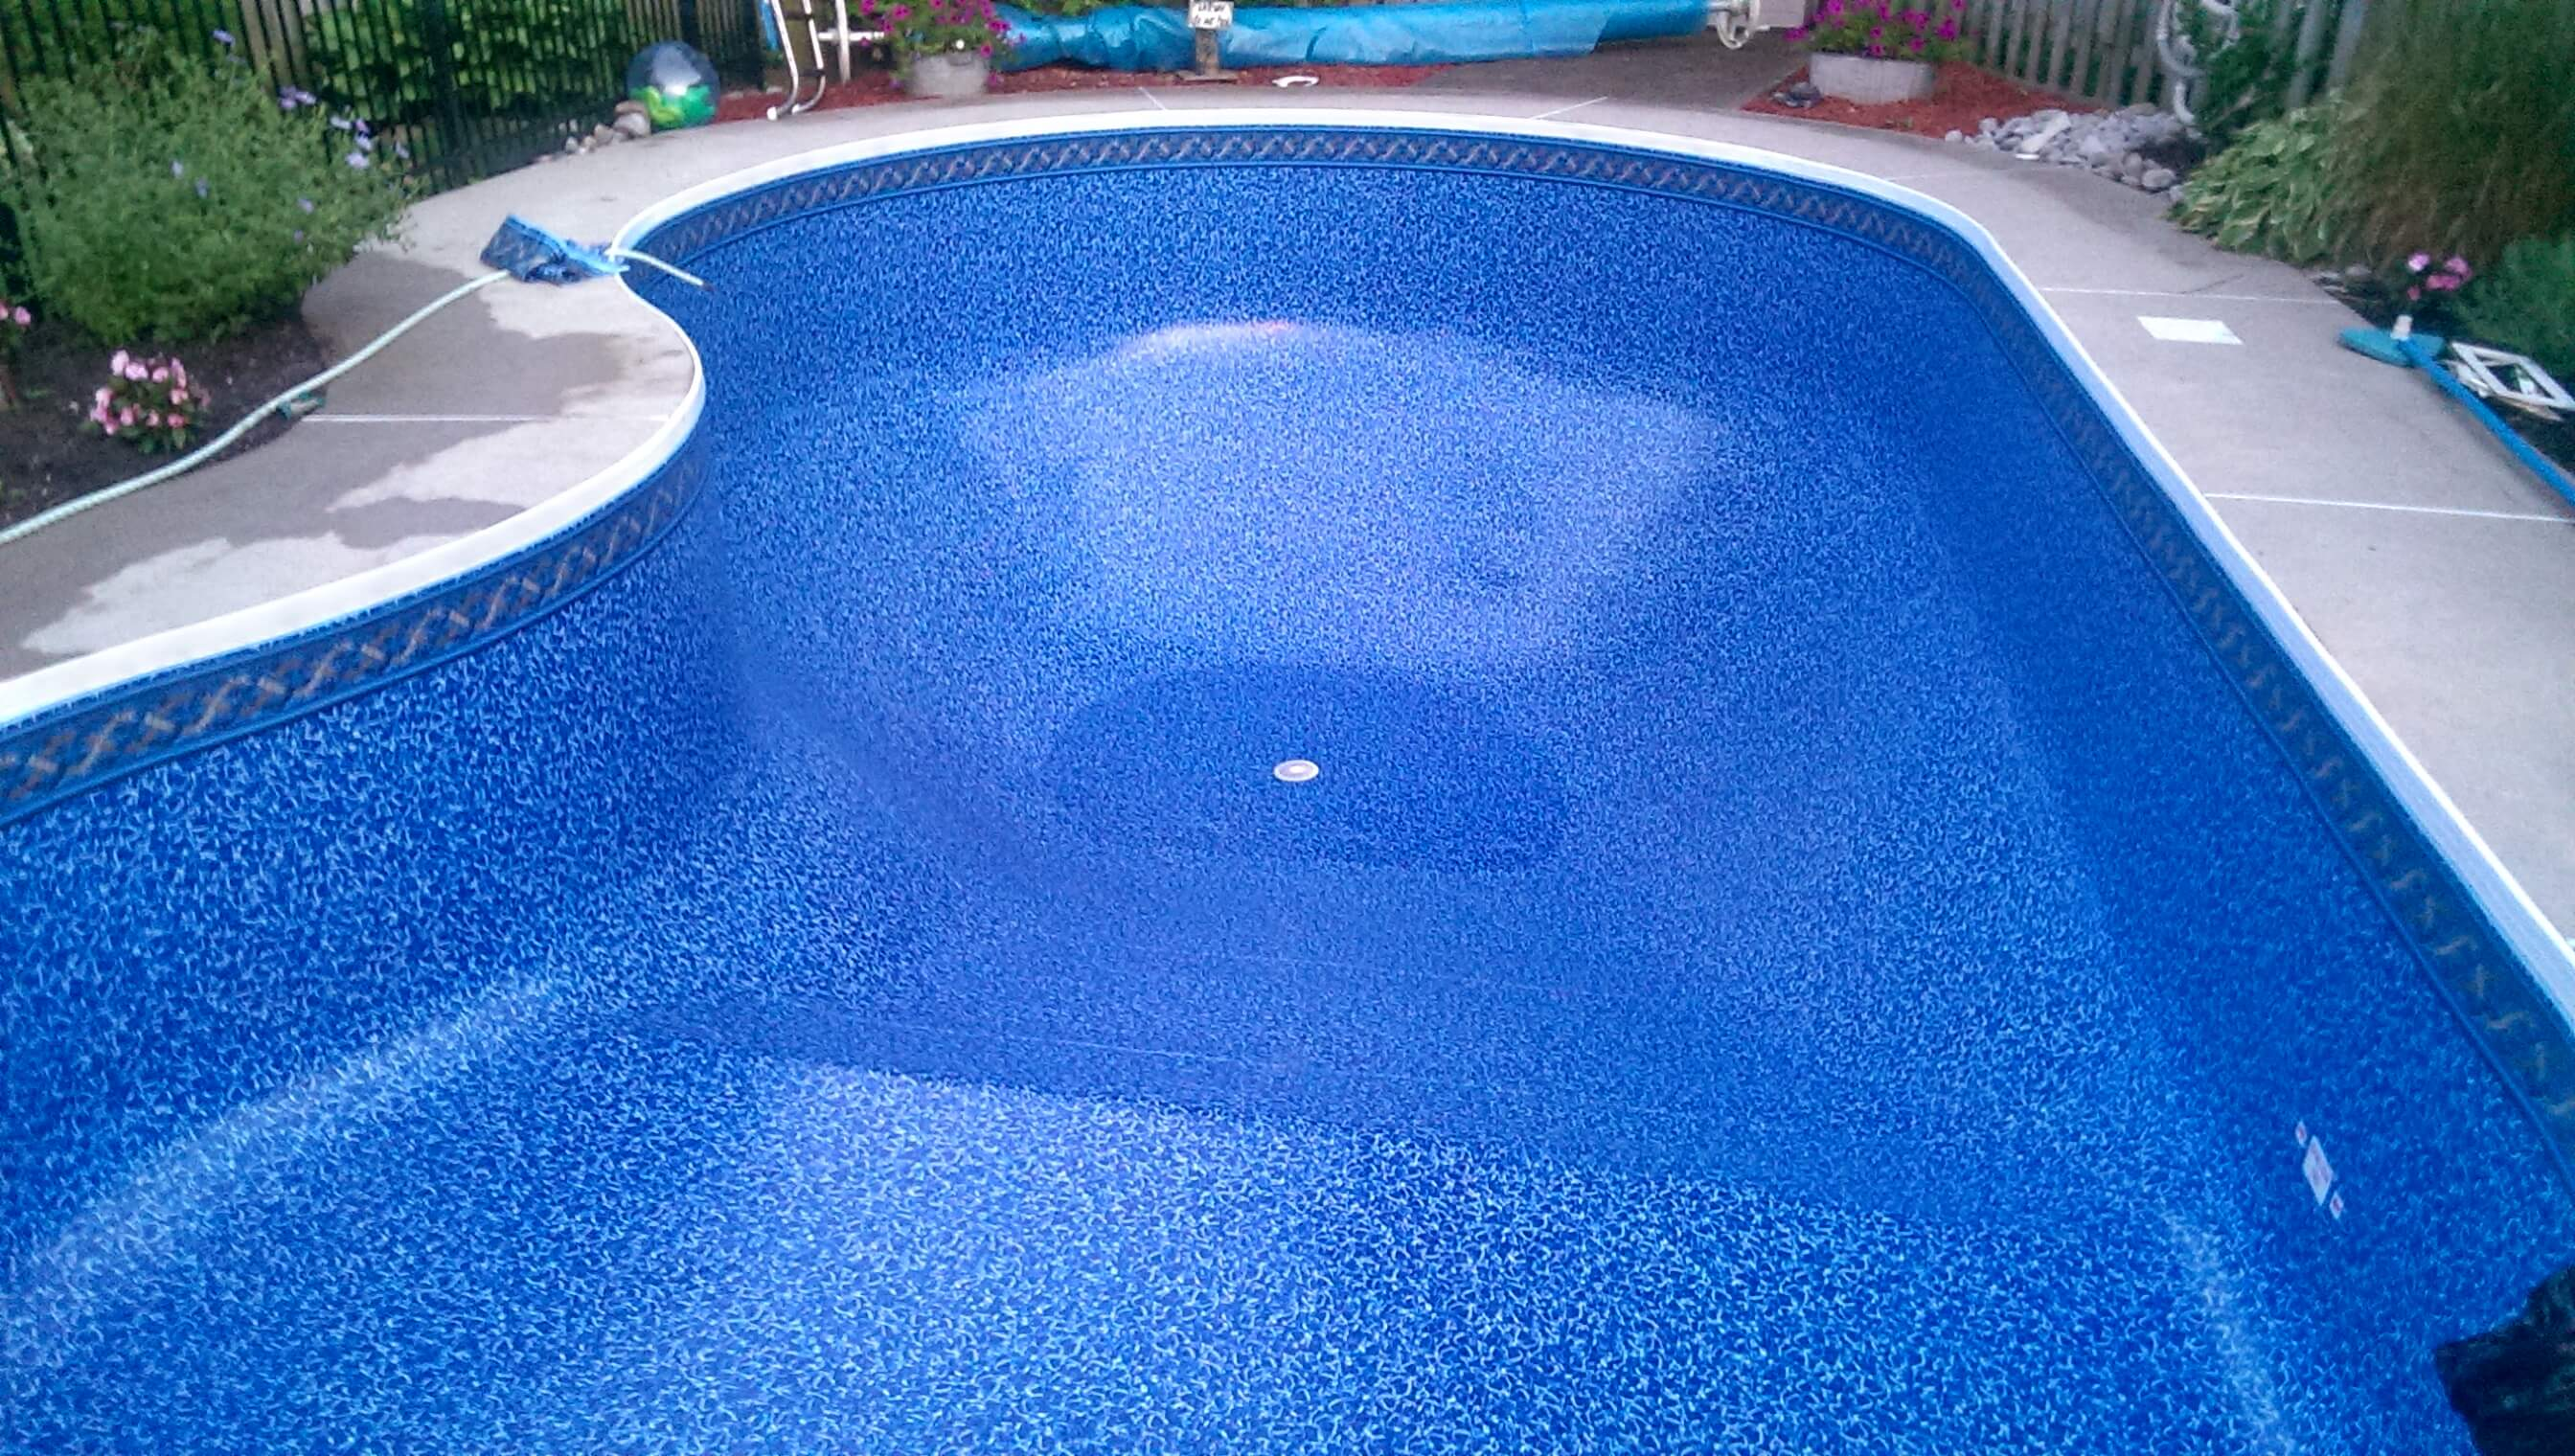 Swimming Pool Liners Pickering Ajax Whitby Oshawa Crystal Clear Pool Services